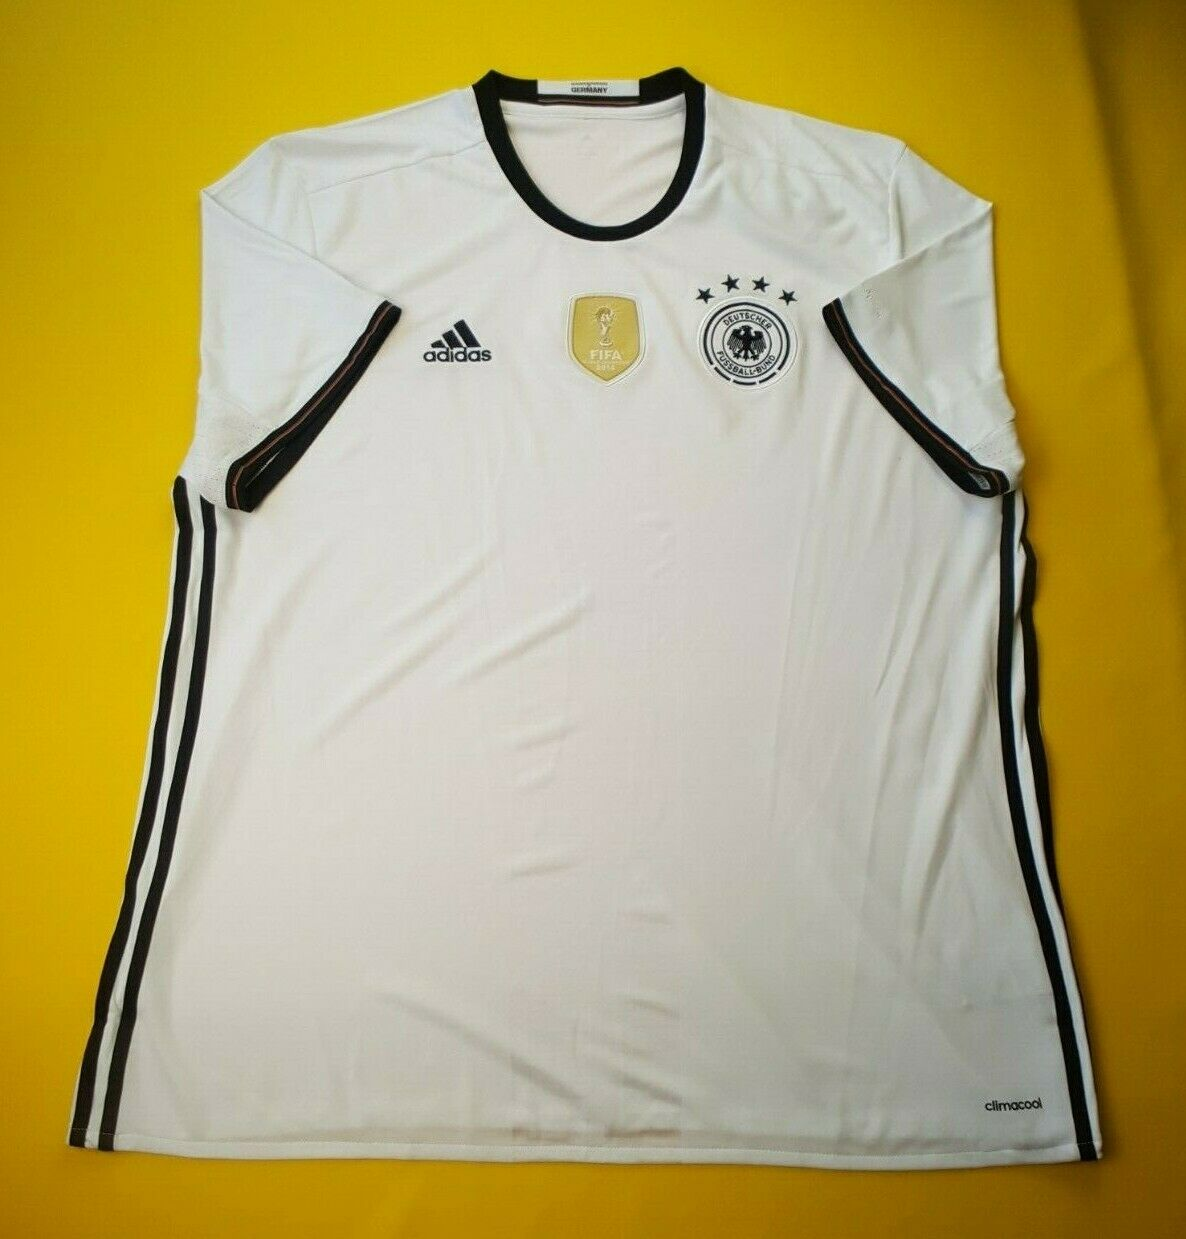 4.9 5 Germany soccer jersey 2XL 2016 home shirt AI5014 football Adidas ig93